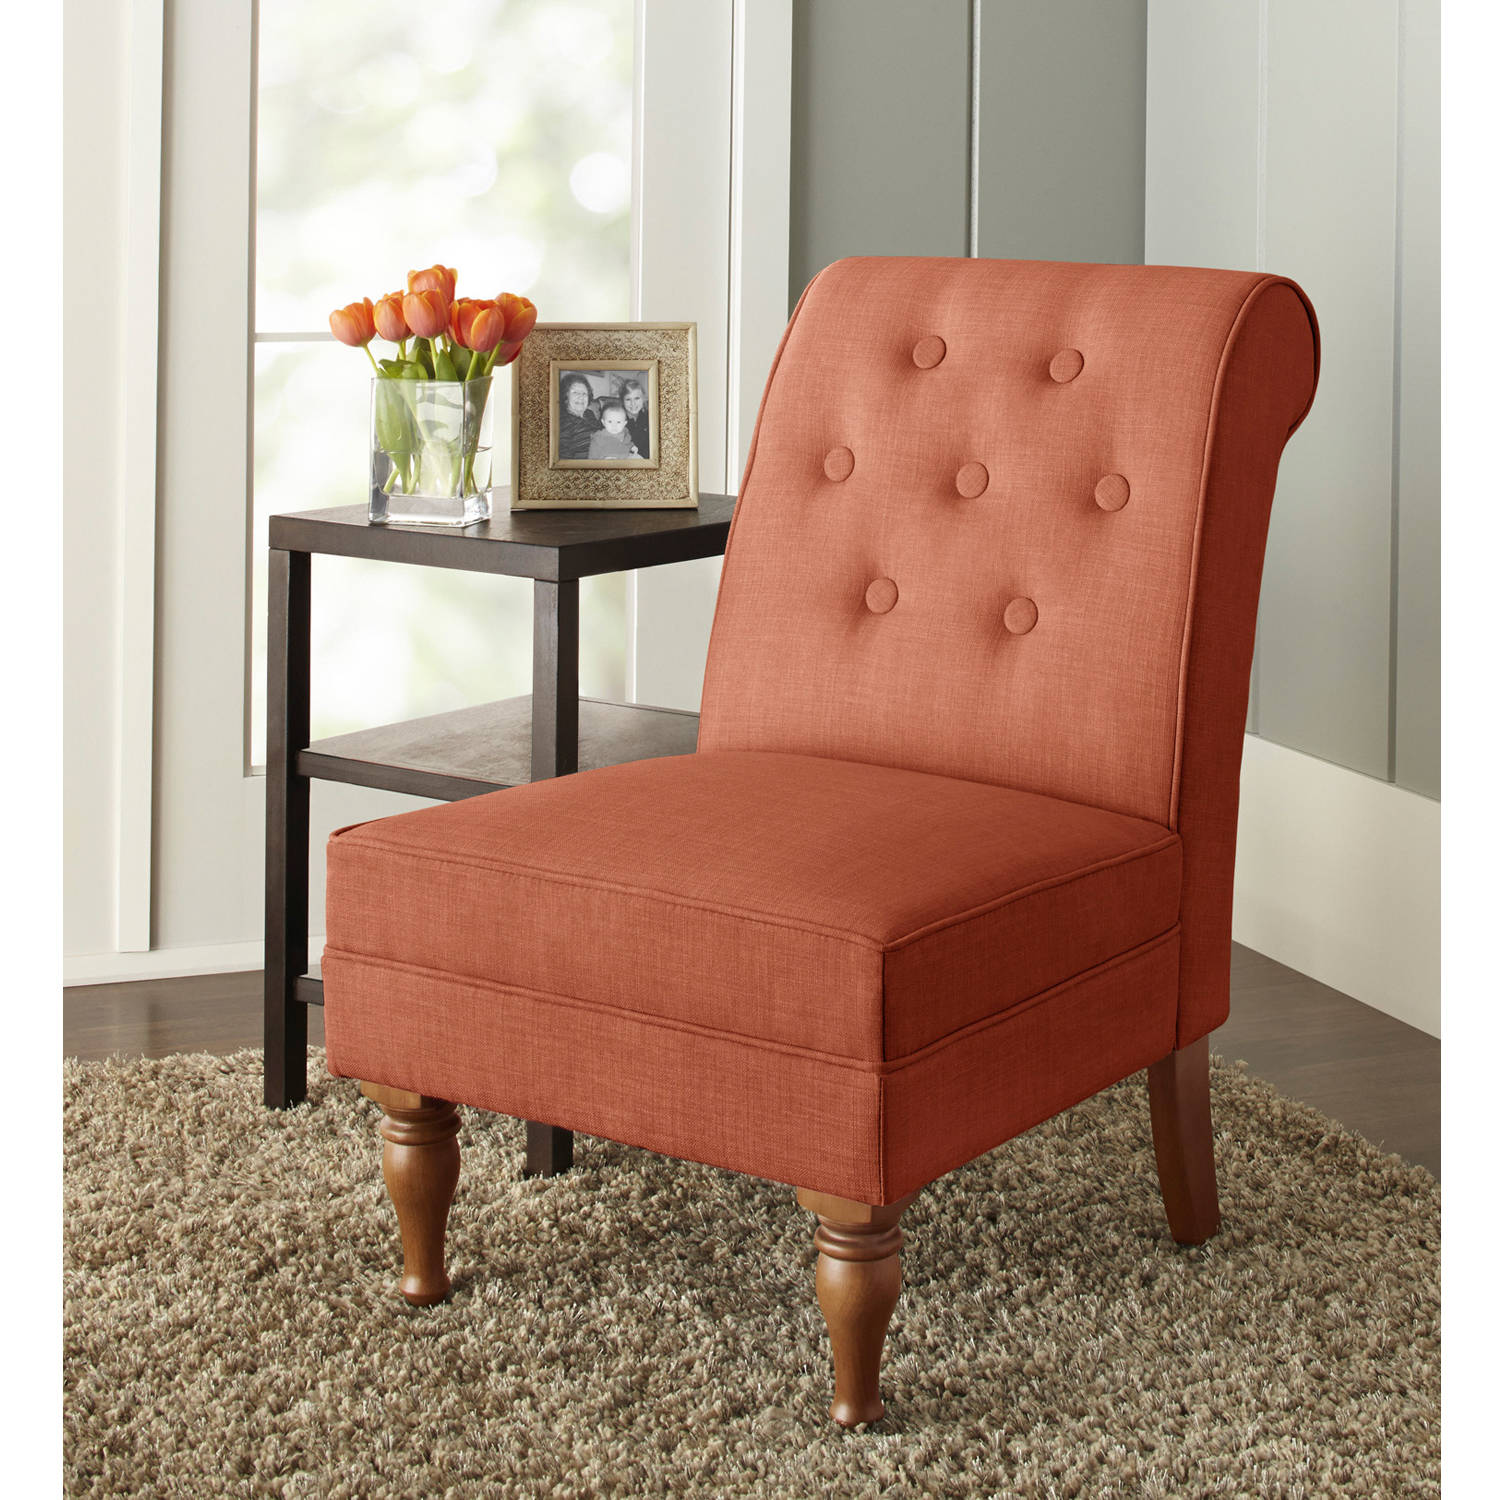 Better Homes & Gardens Colette Tufted Accent Chair, Multiple Colors by BDDMI